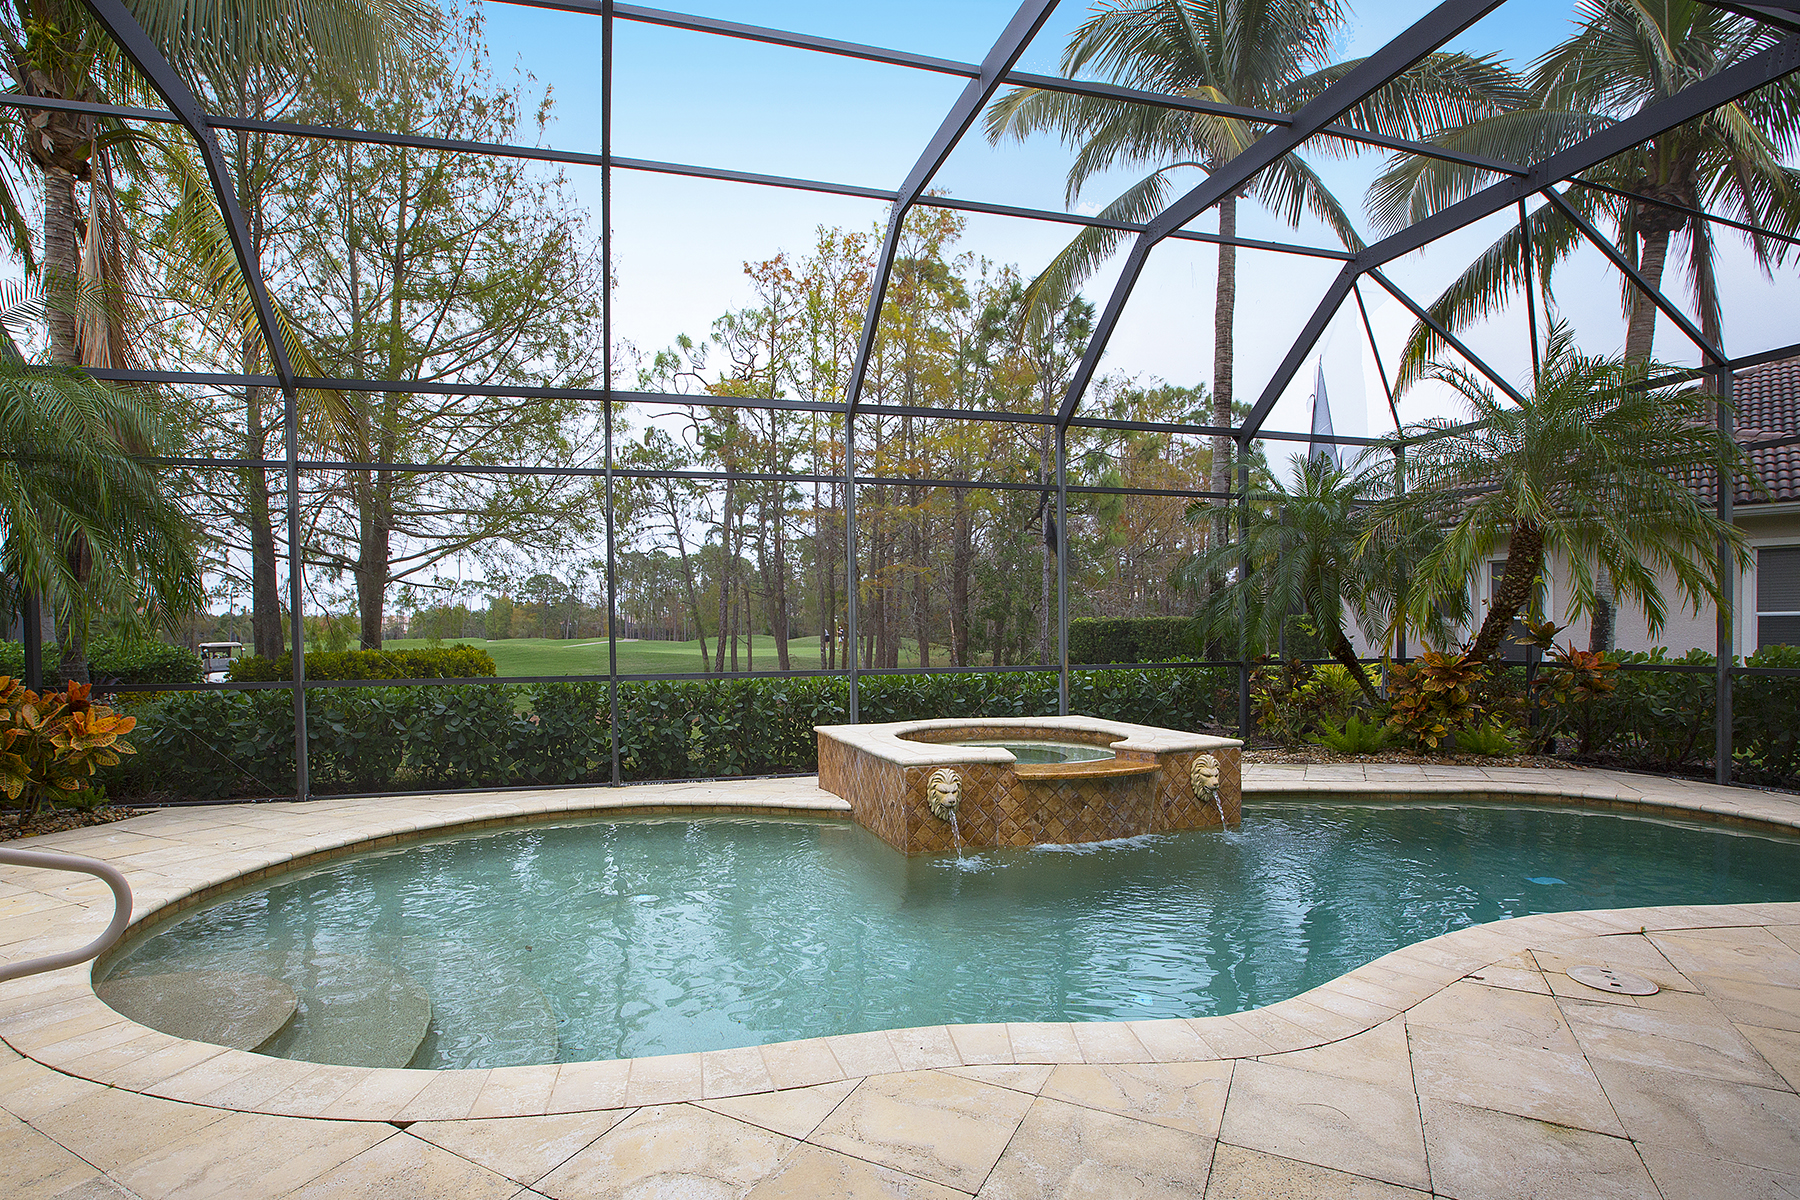 Additional photo for property listing at OLDE CYPRESS 7465  Treeline Dr,  Naples, Florida 34119 United States